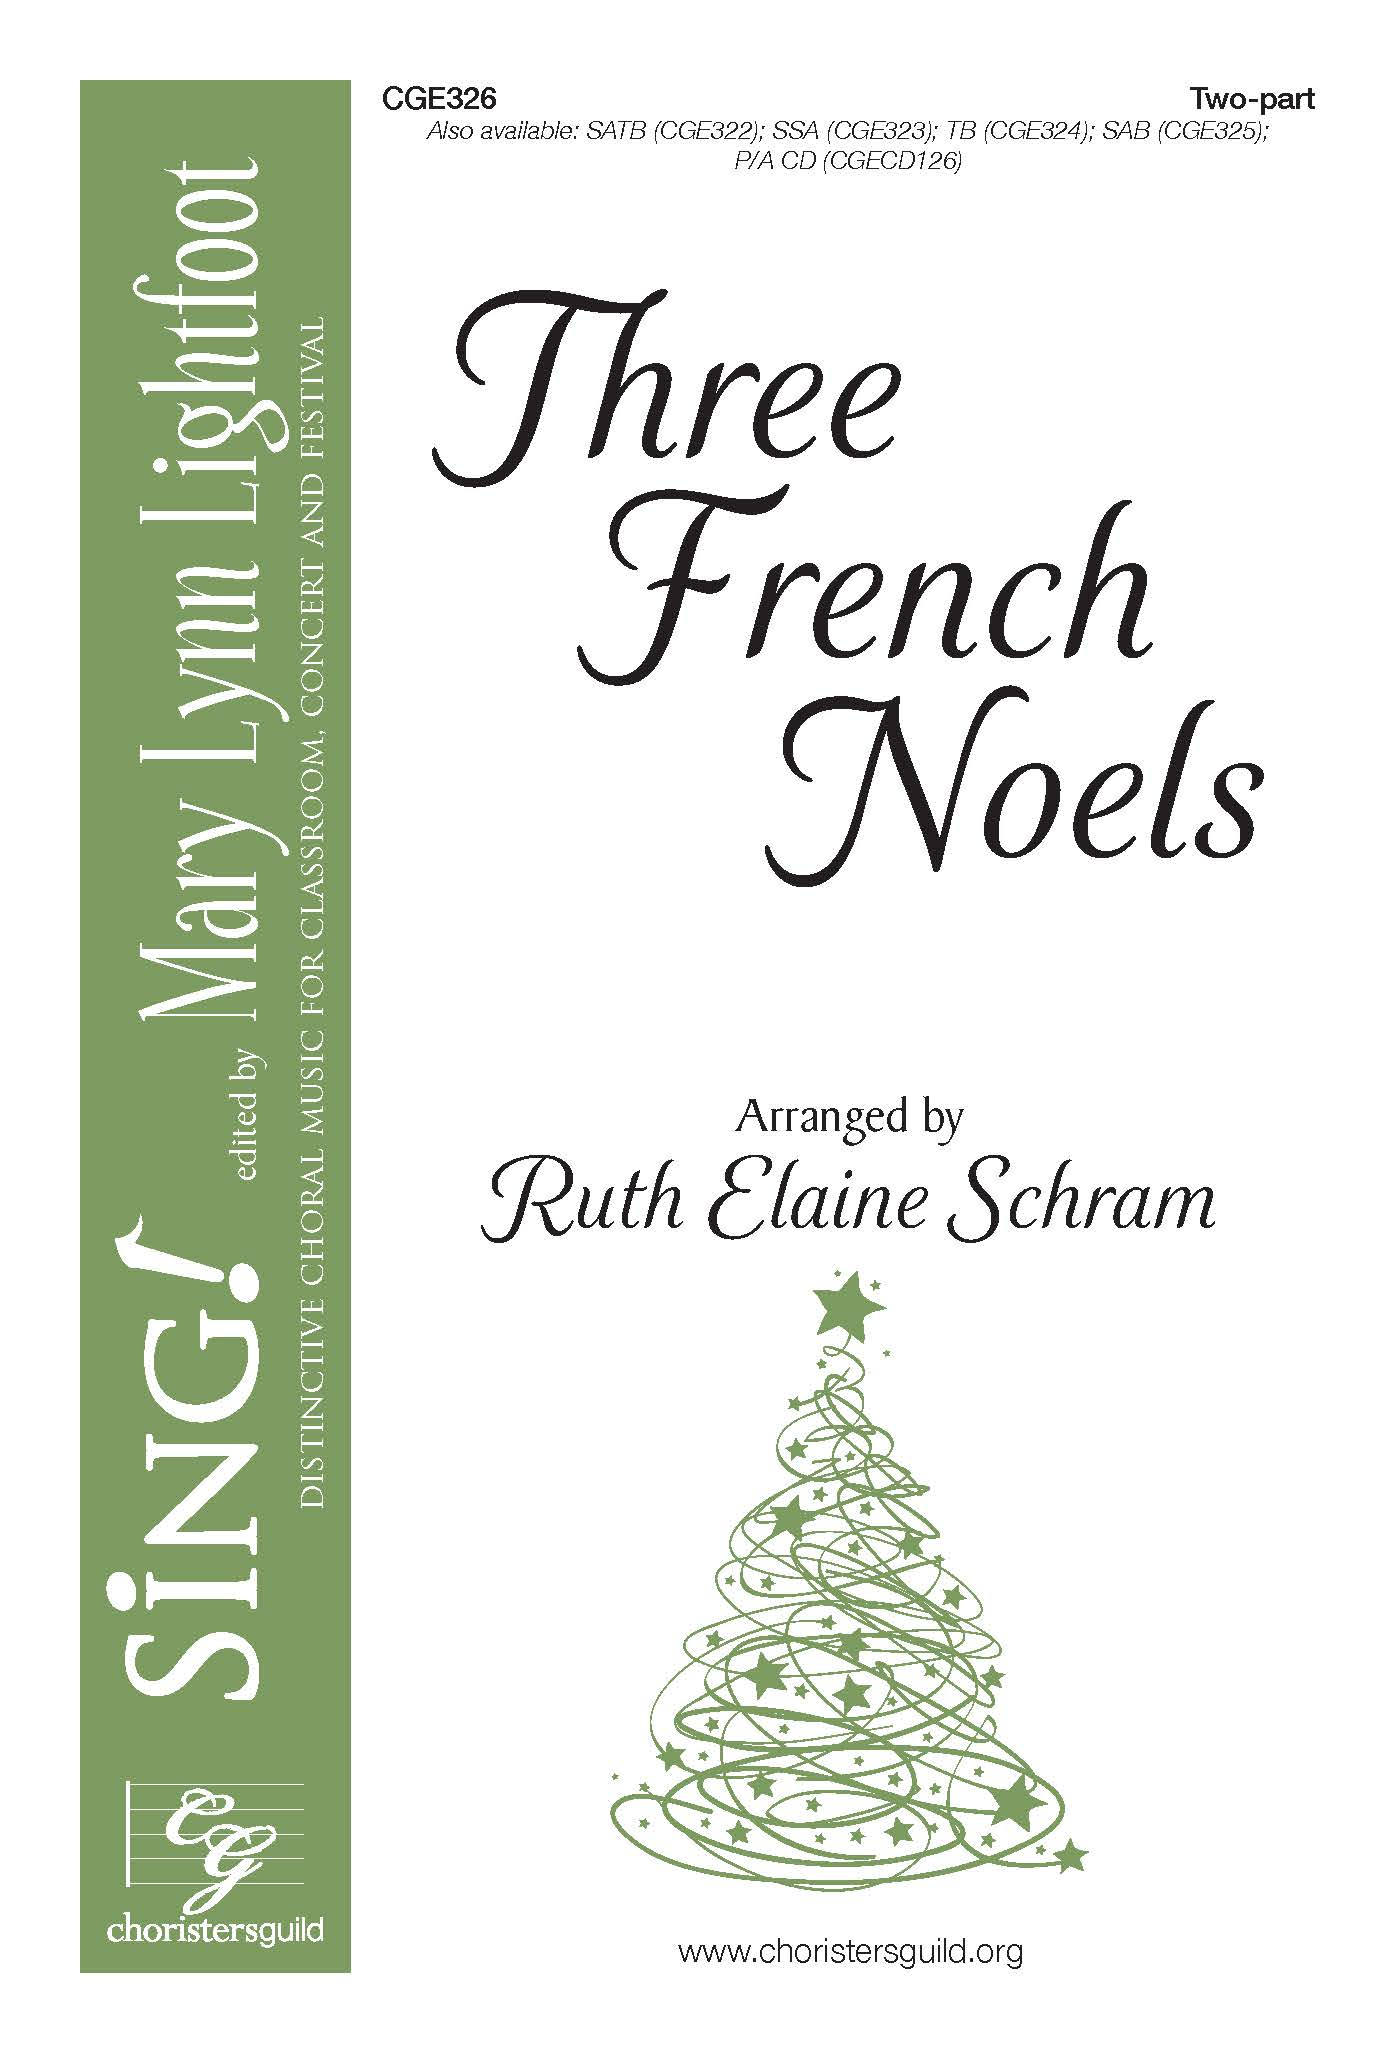 Three French Noels - Two-part